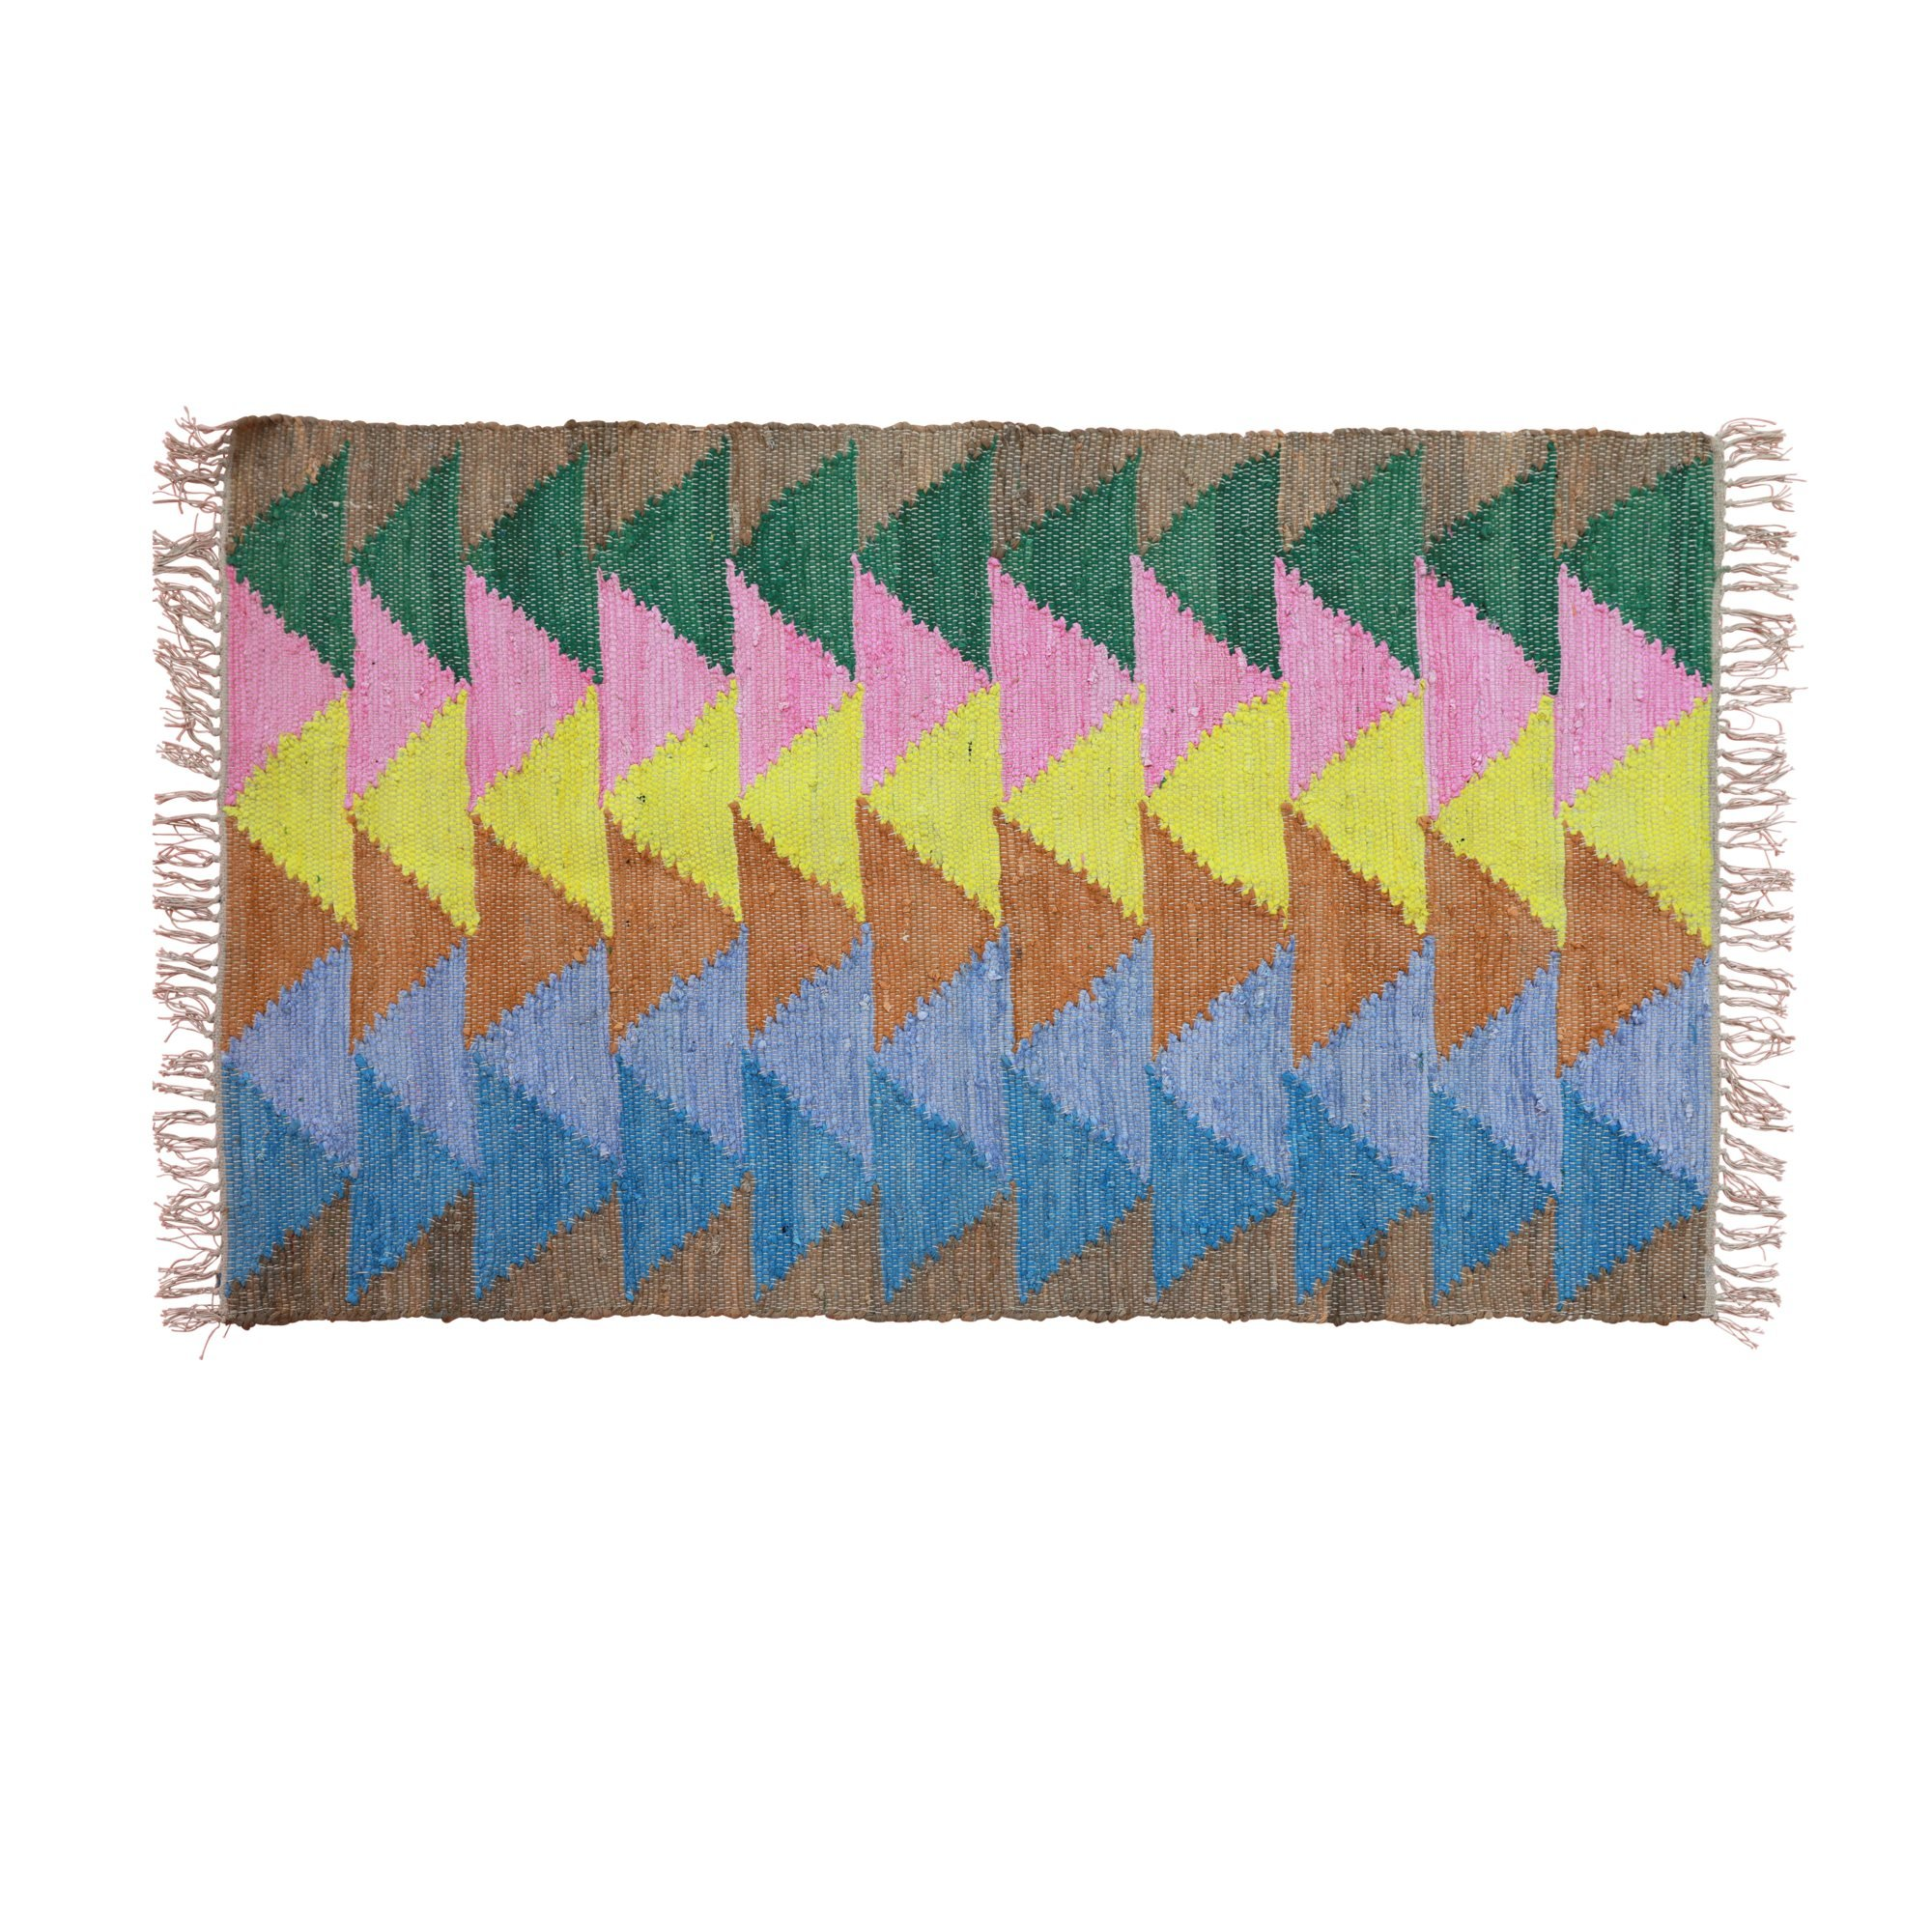 Rice - Handmade Cotton Runner w.